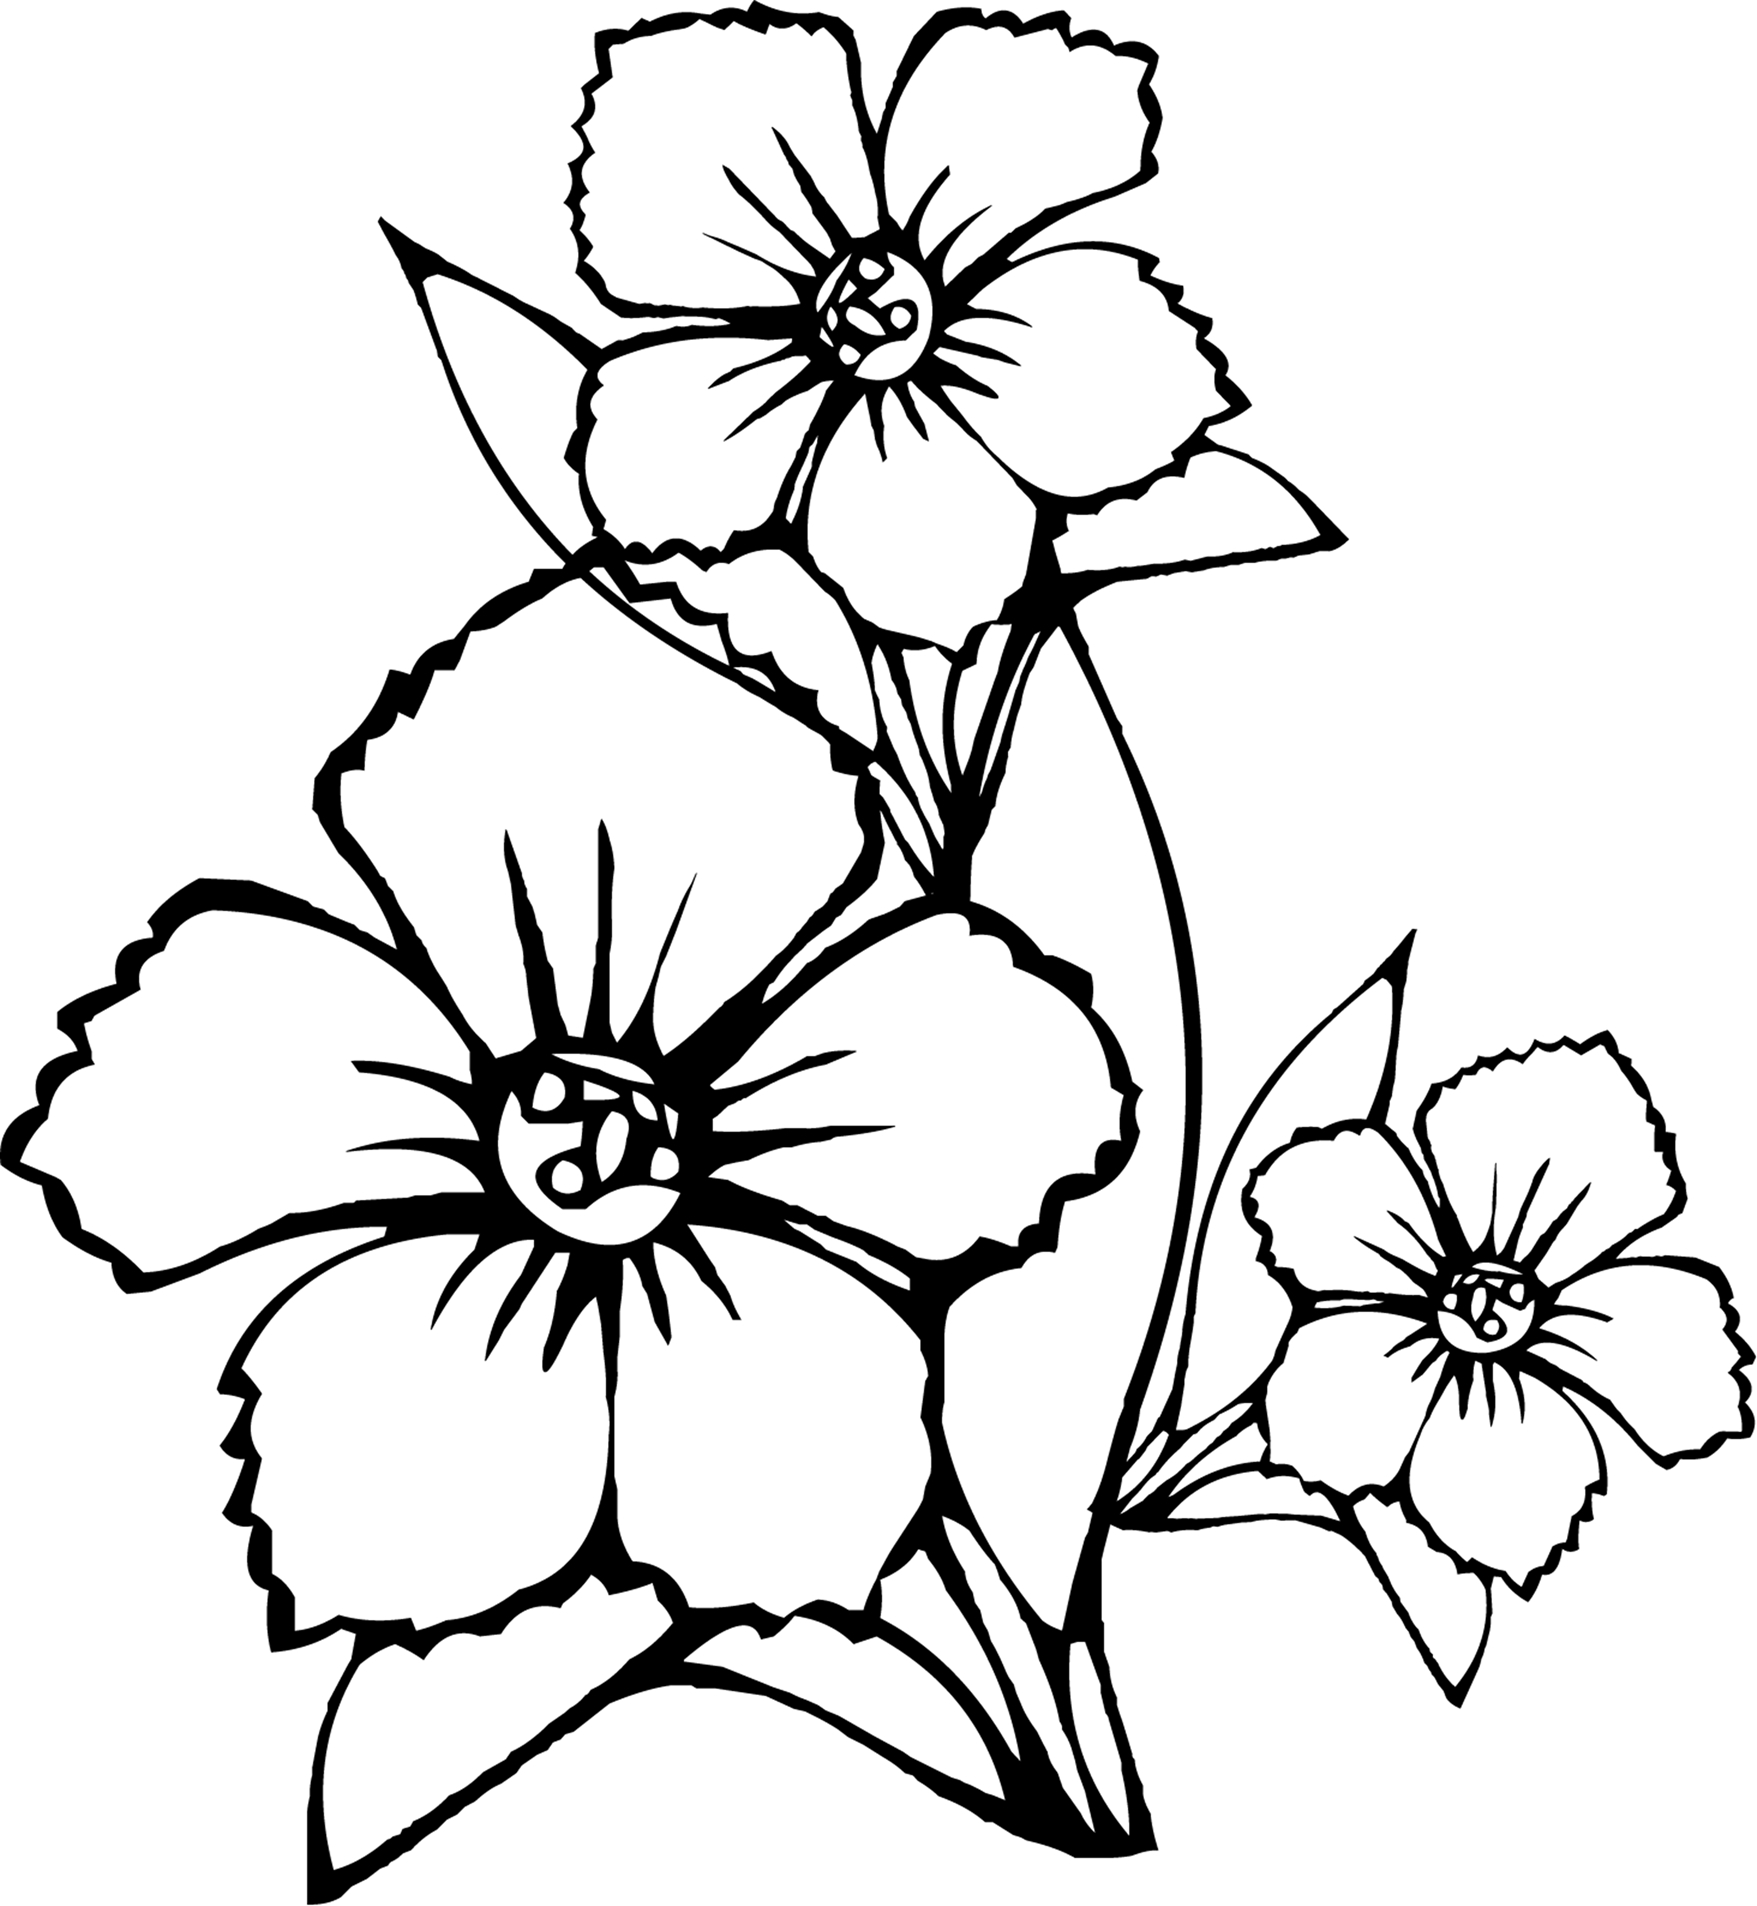 coloring pics of flowers flower coloring pages for adults best coloring pages for coloring flowers pics of